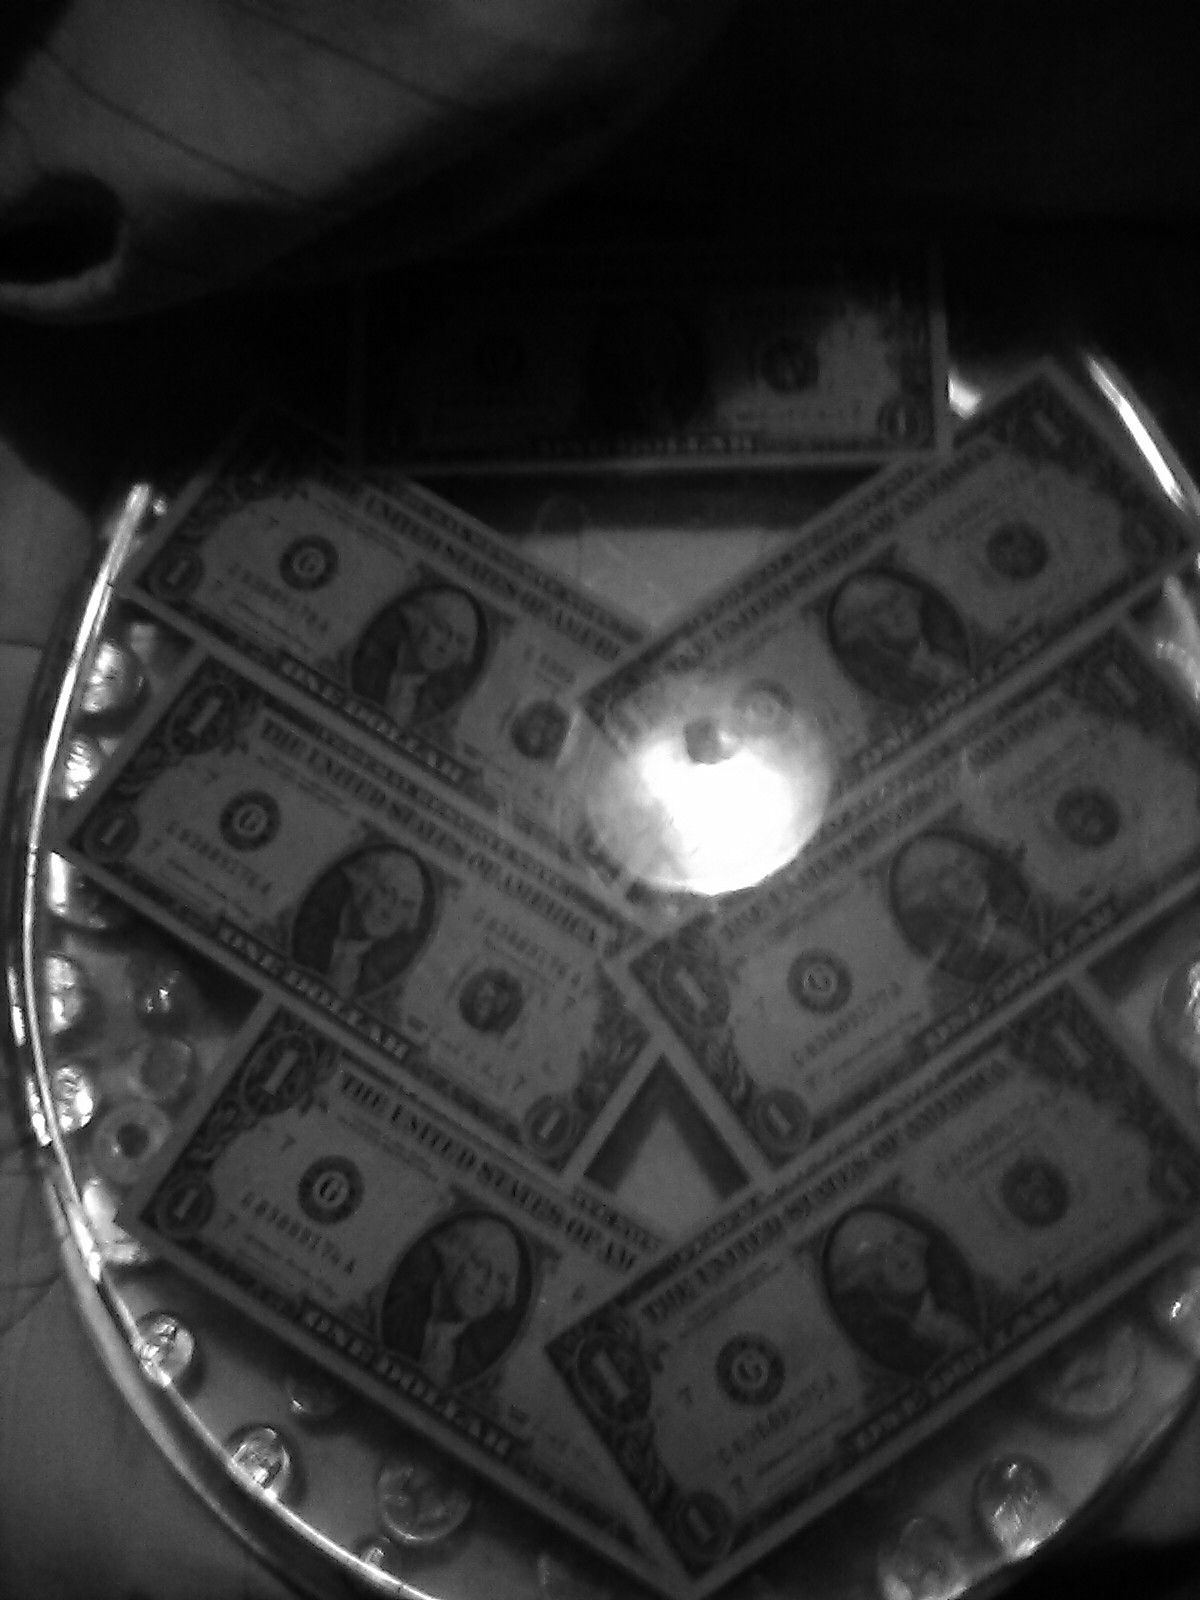 Toilet Seat with US Currency in it